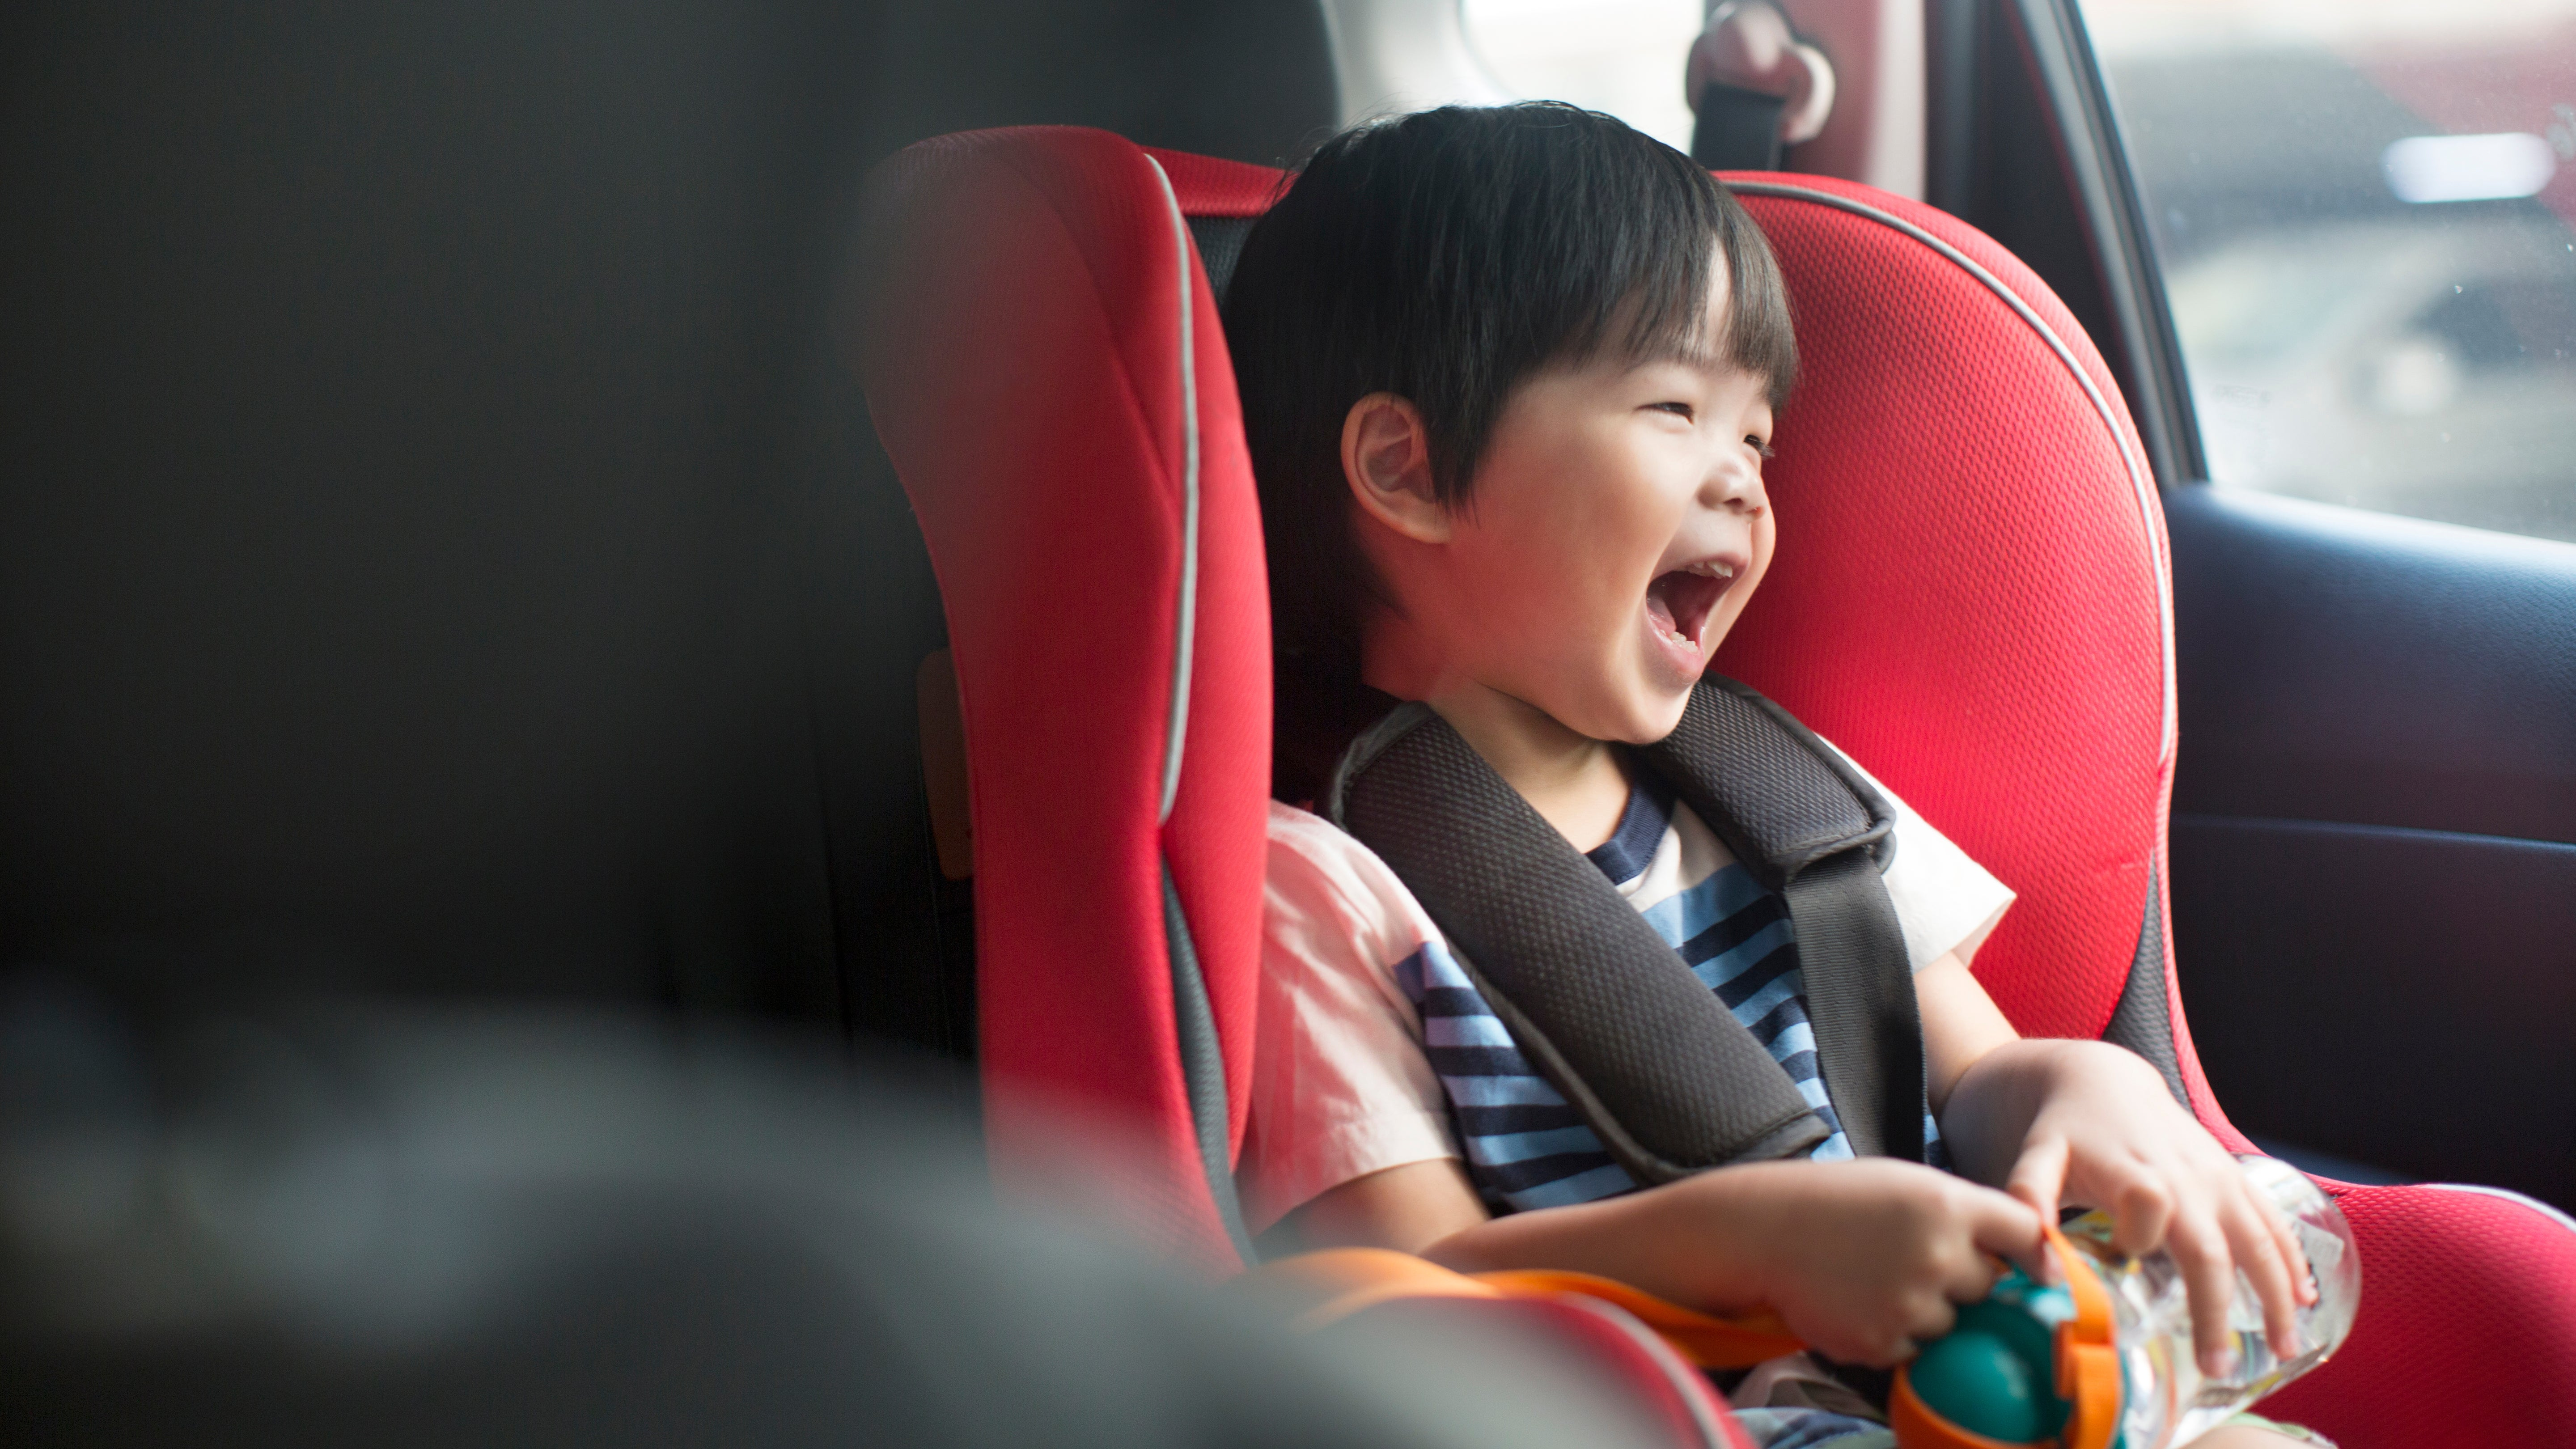 can kids travel in an uber without a child seat?